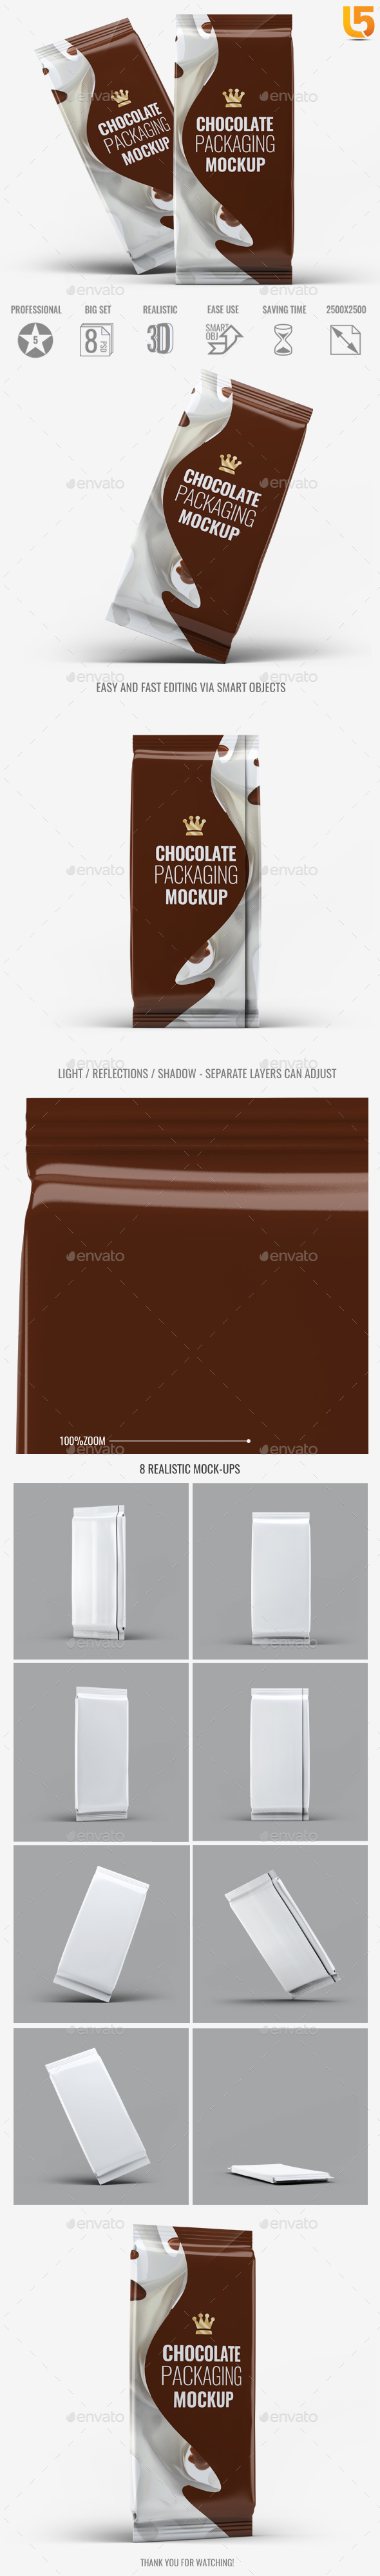 Chocolate Packaging Mock-Up